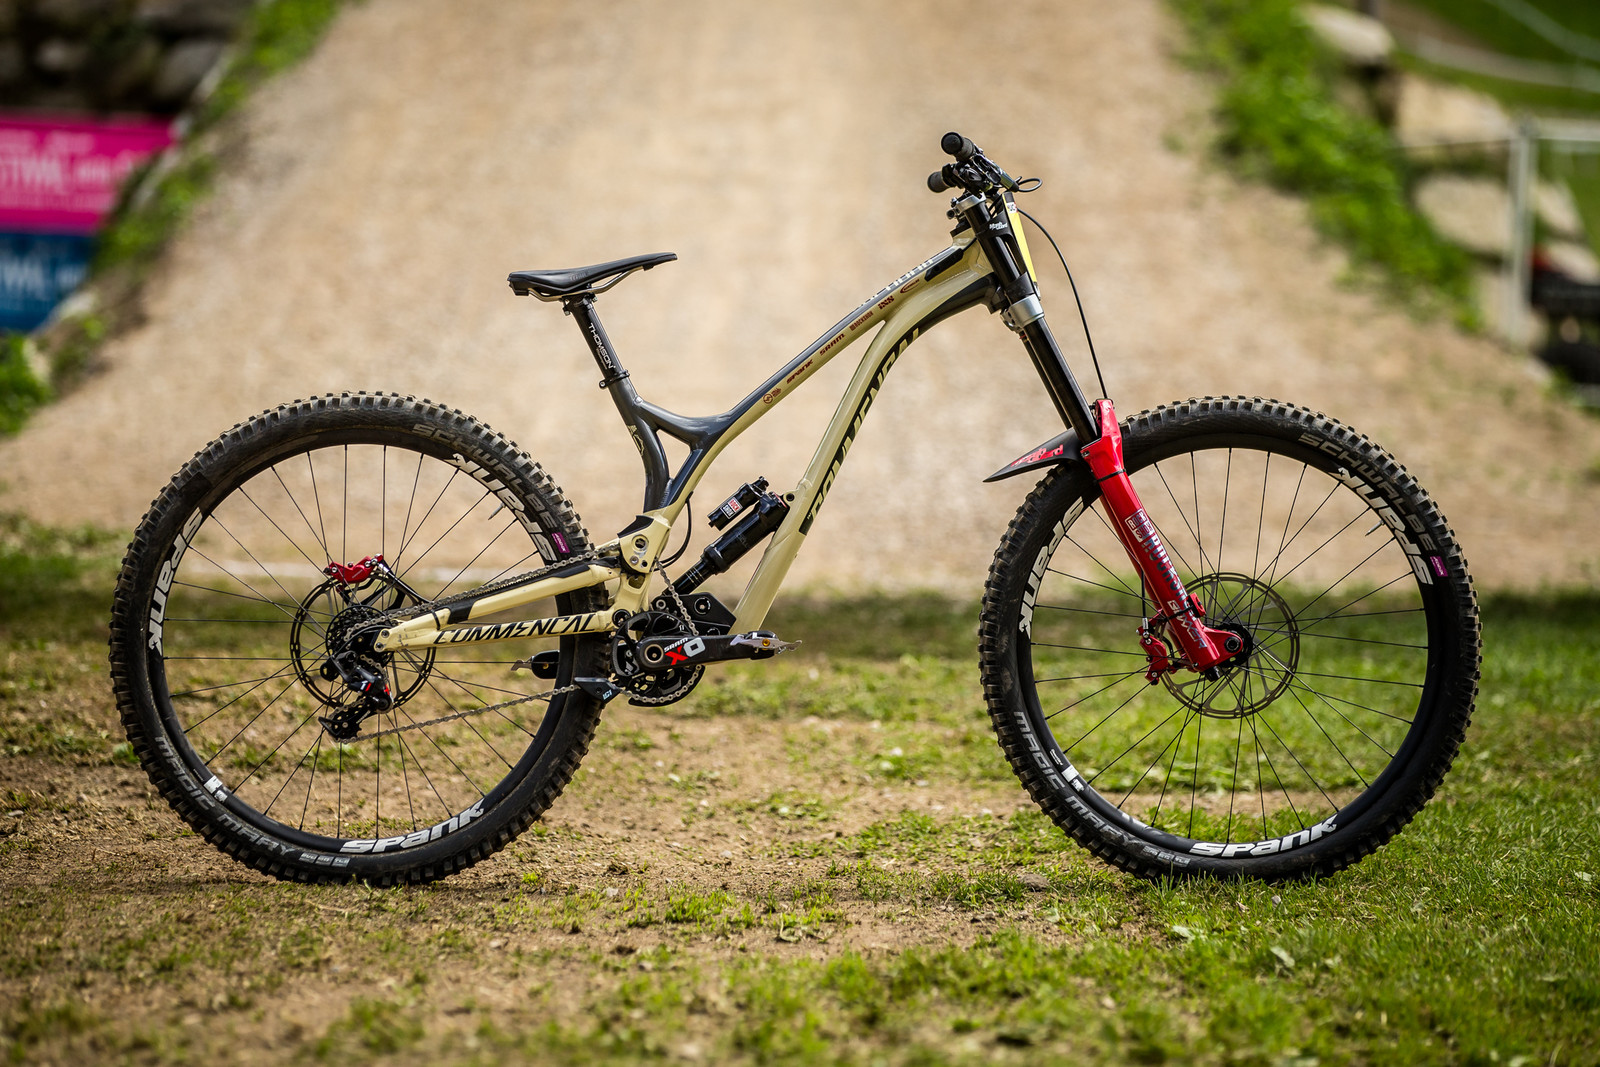 The Subtle Differences Between Amaury Pierron's Winning Commencal Supreme DH 29ers - WINNING BIKE - Amaury Pierron's Commencal Supreme DH 29 - Mountain Biking Pictures - Vital MTB